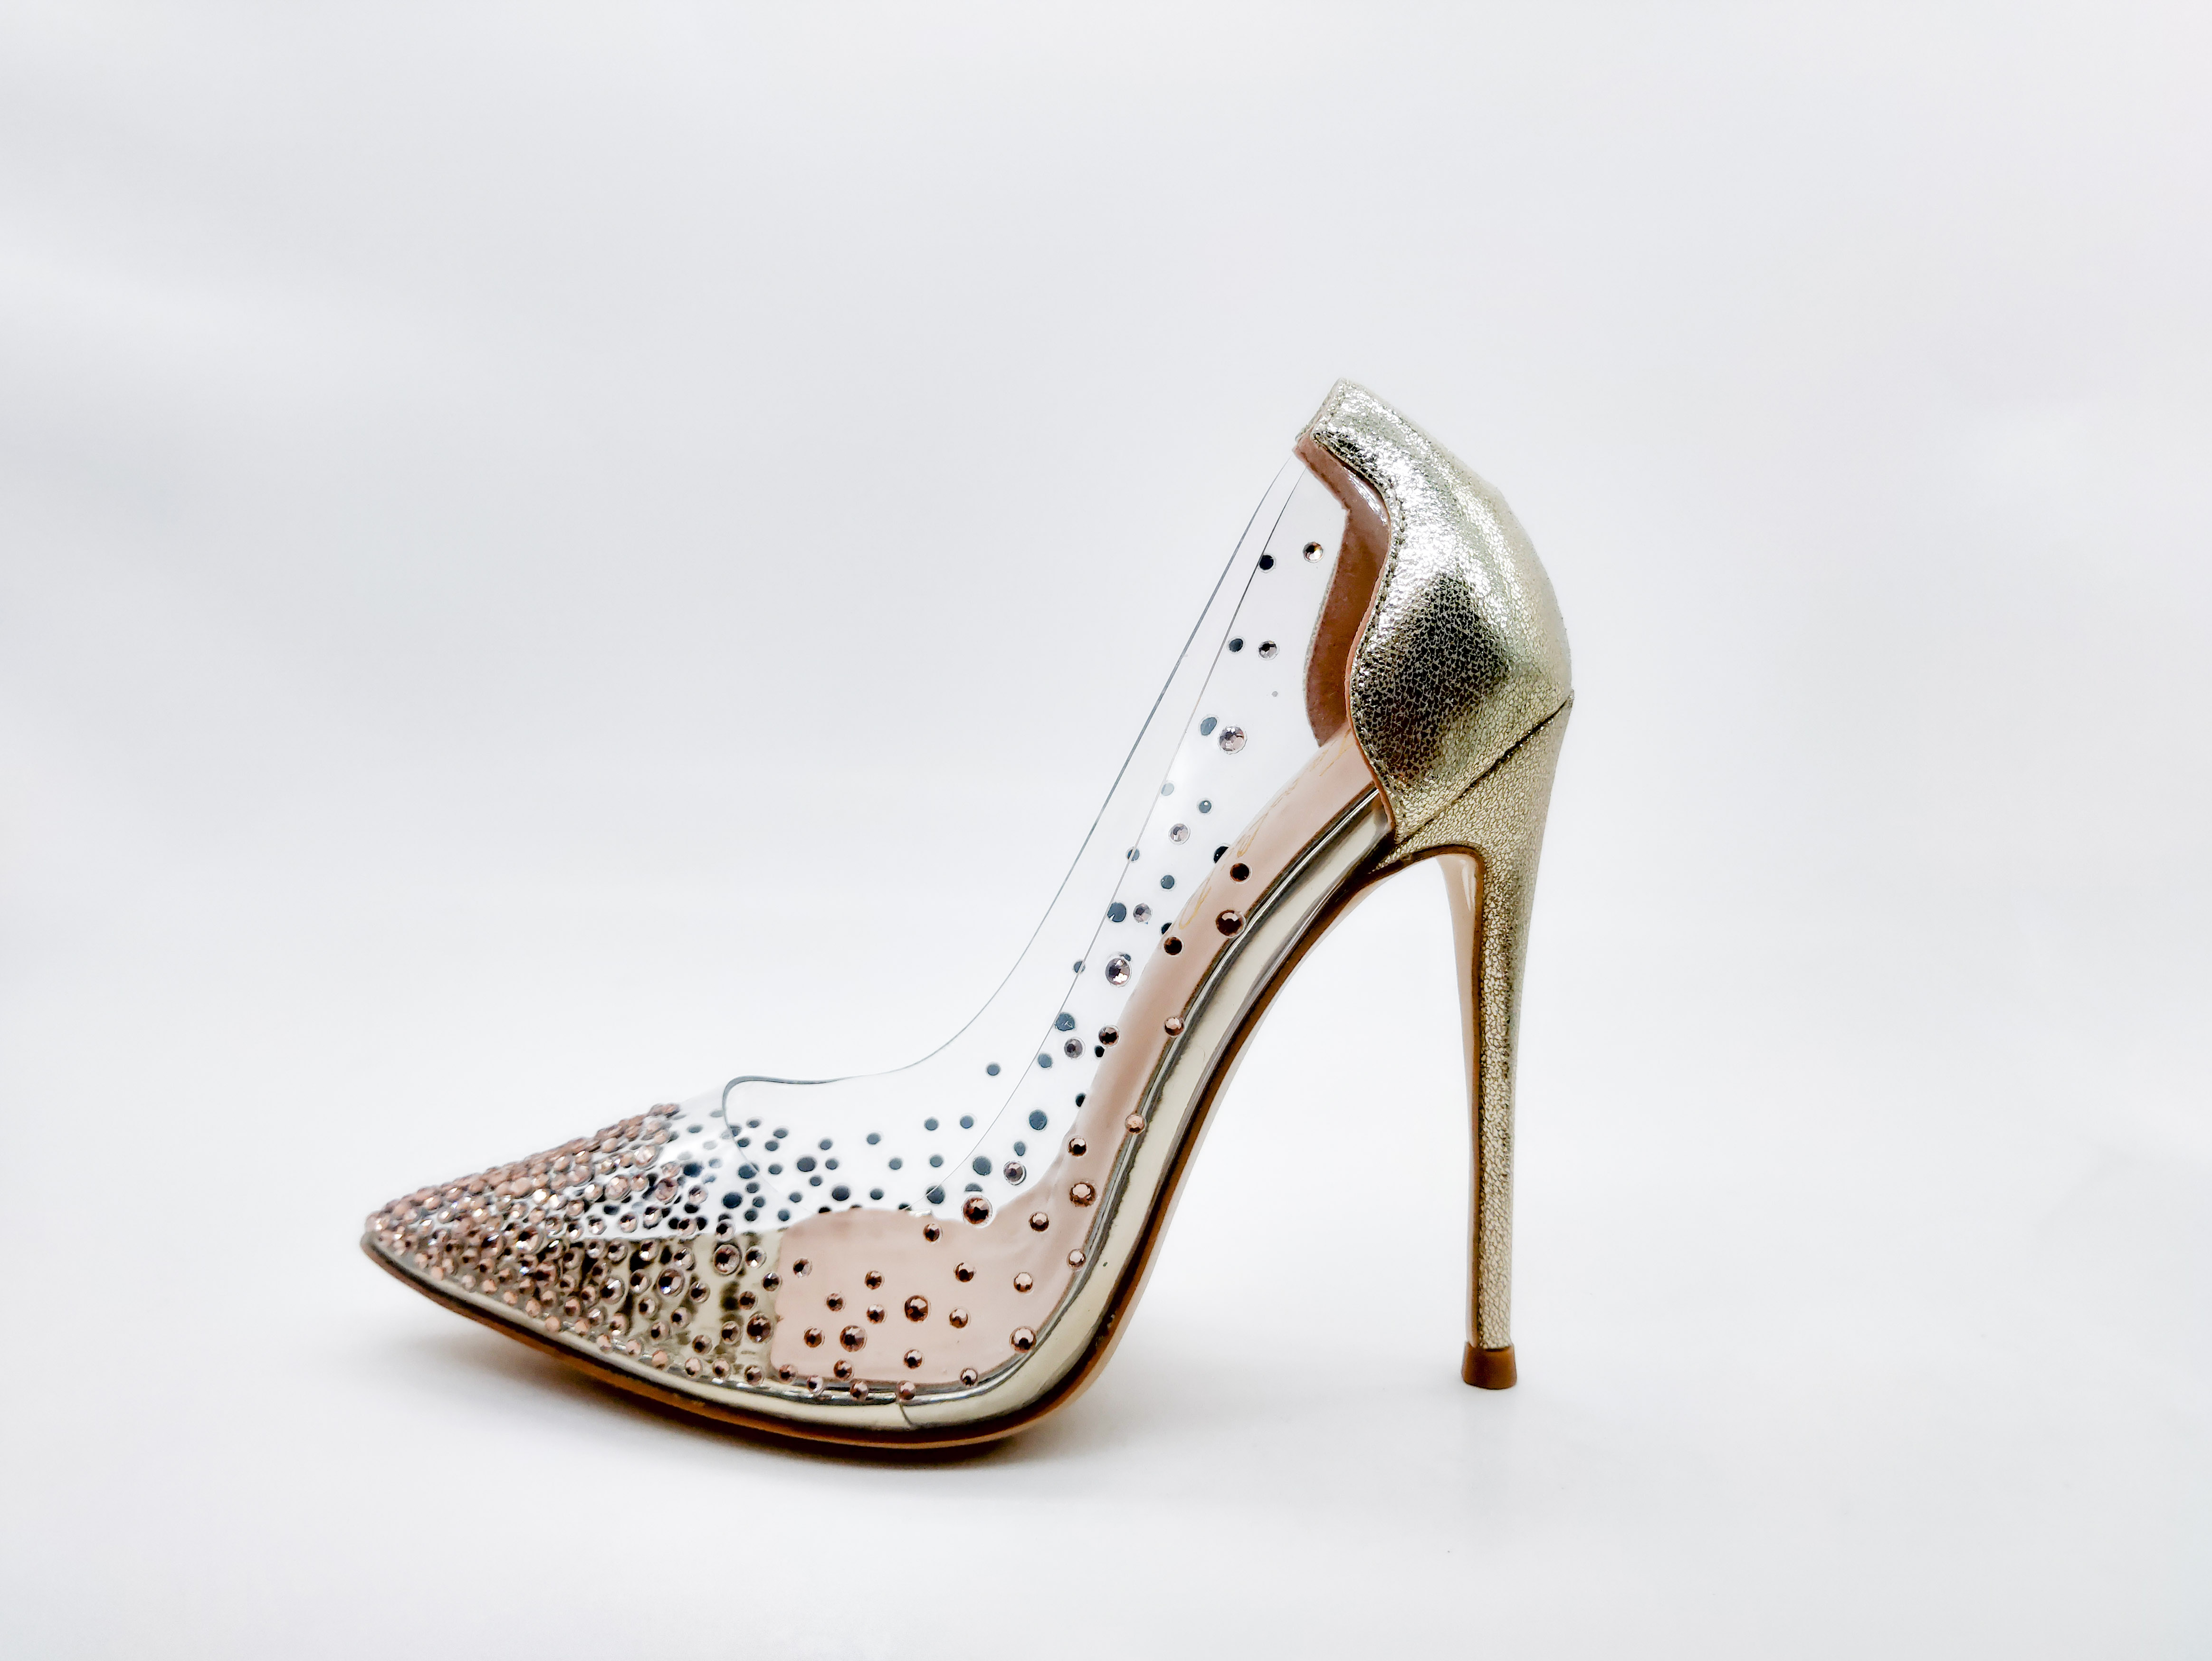 2020 new fairy shoes, single crystal shoes, transparent crystal shoes, net red shoes, tiktok, super high heels, and wedding shoes.